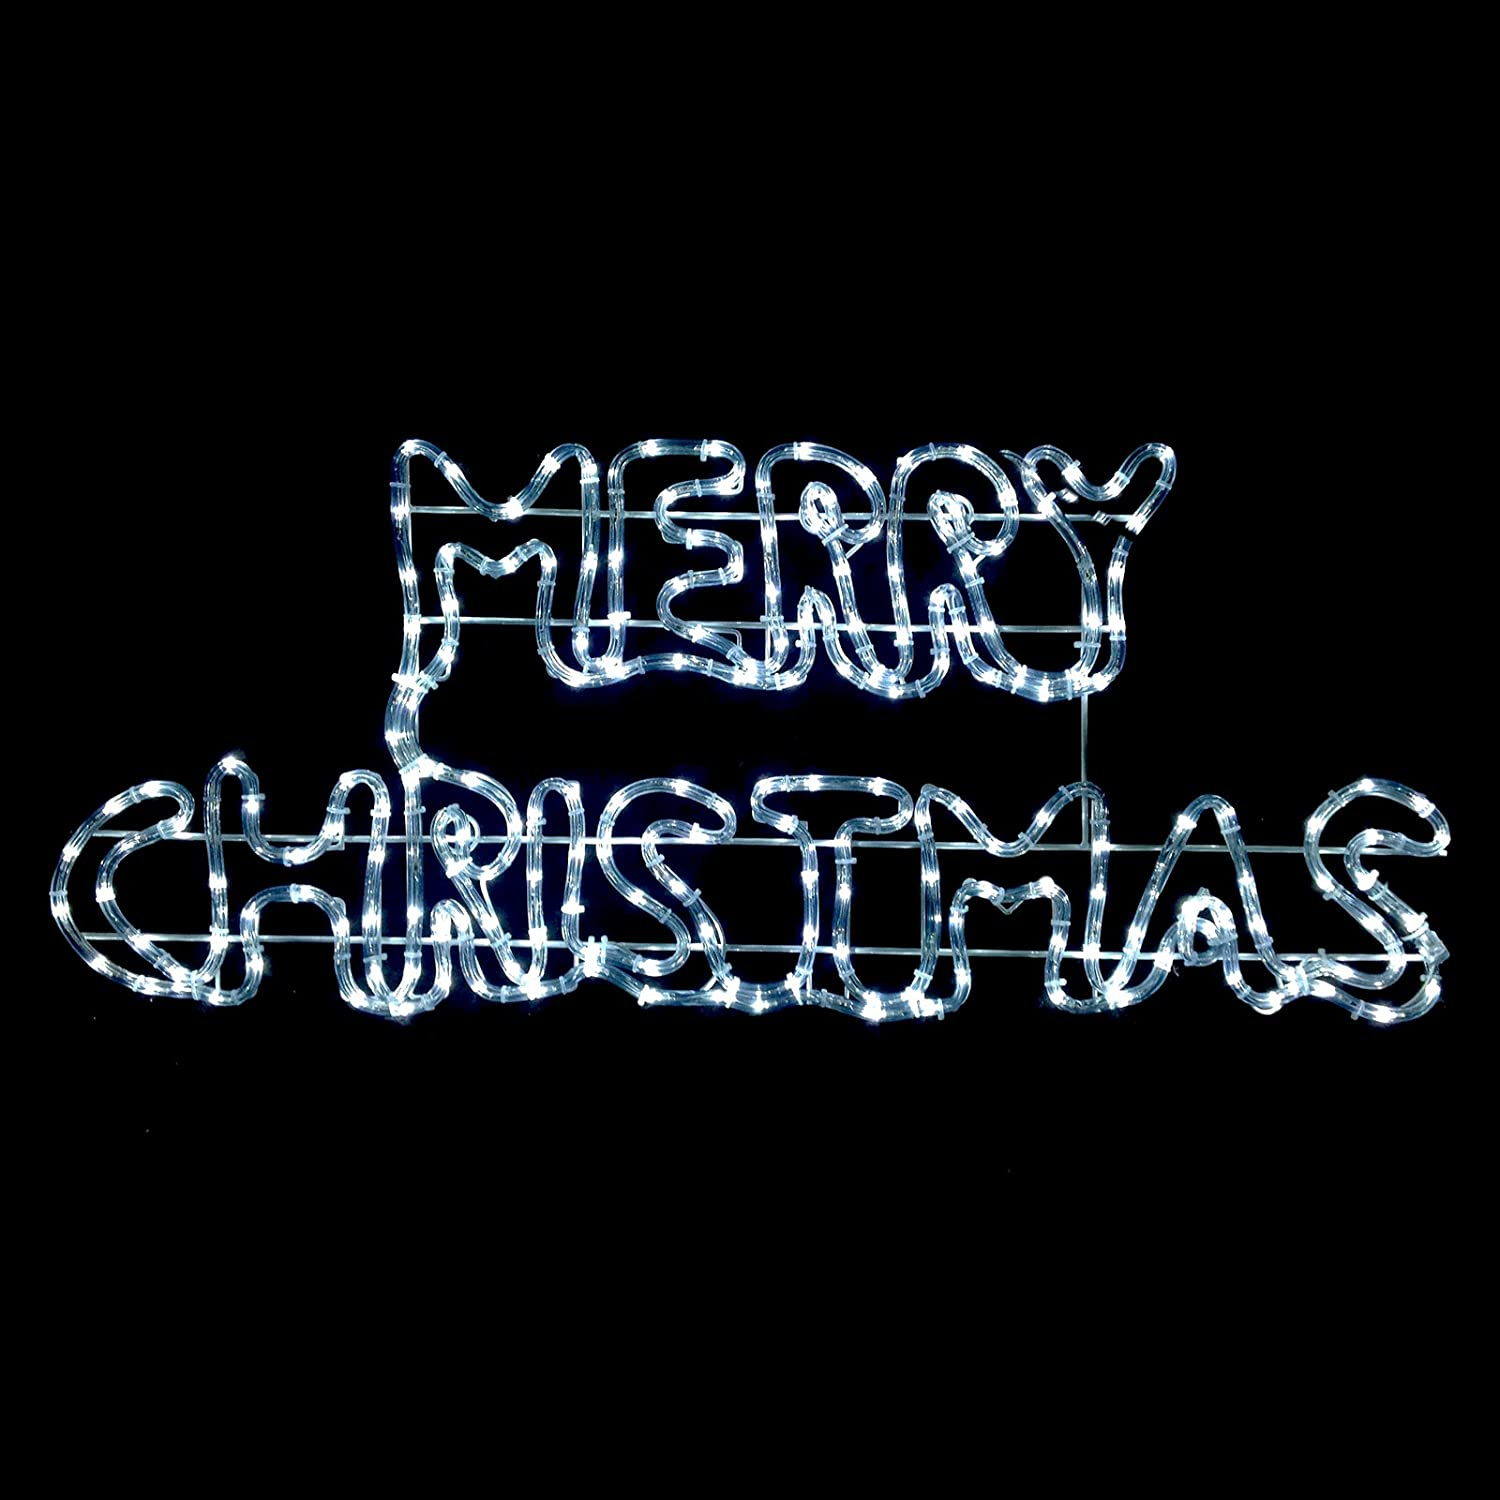 Twinkling White LED Merry Christmas Rope Light Sign Decoration  Indoor/Outdoor